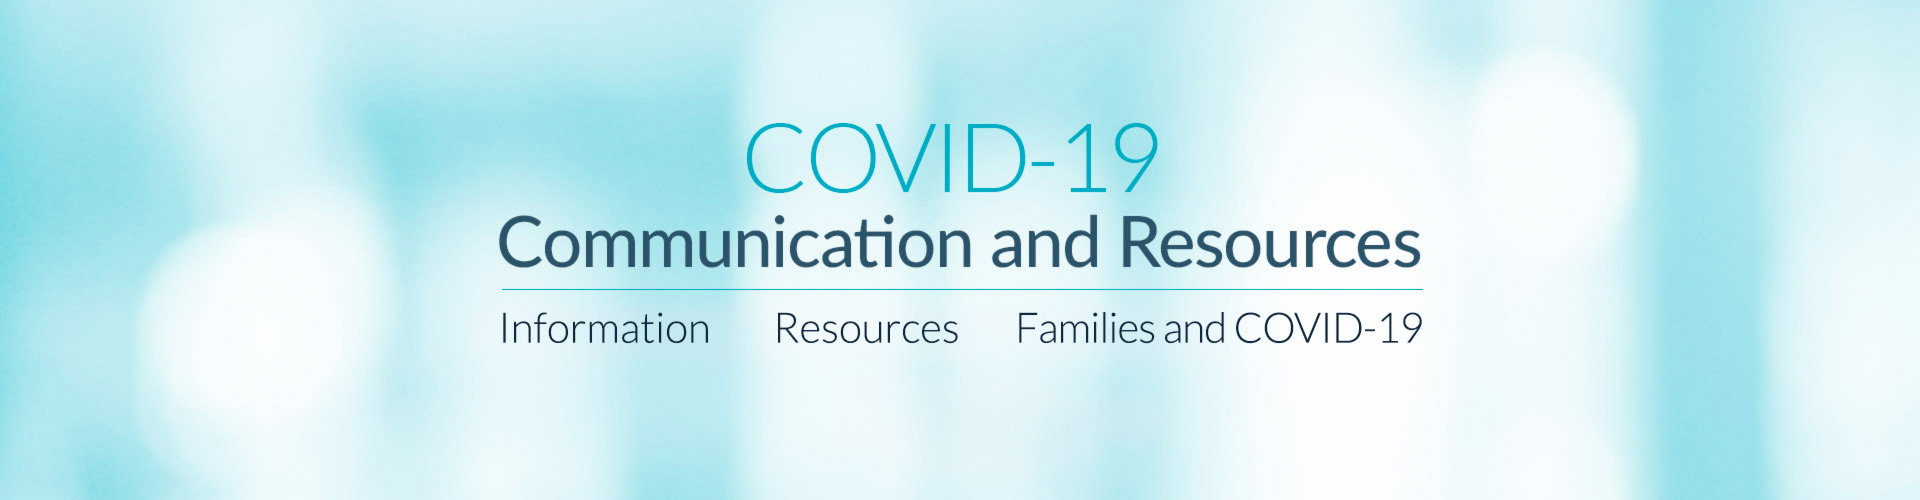 COVID-19 Communication and Resources